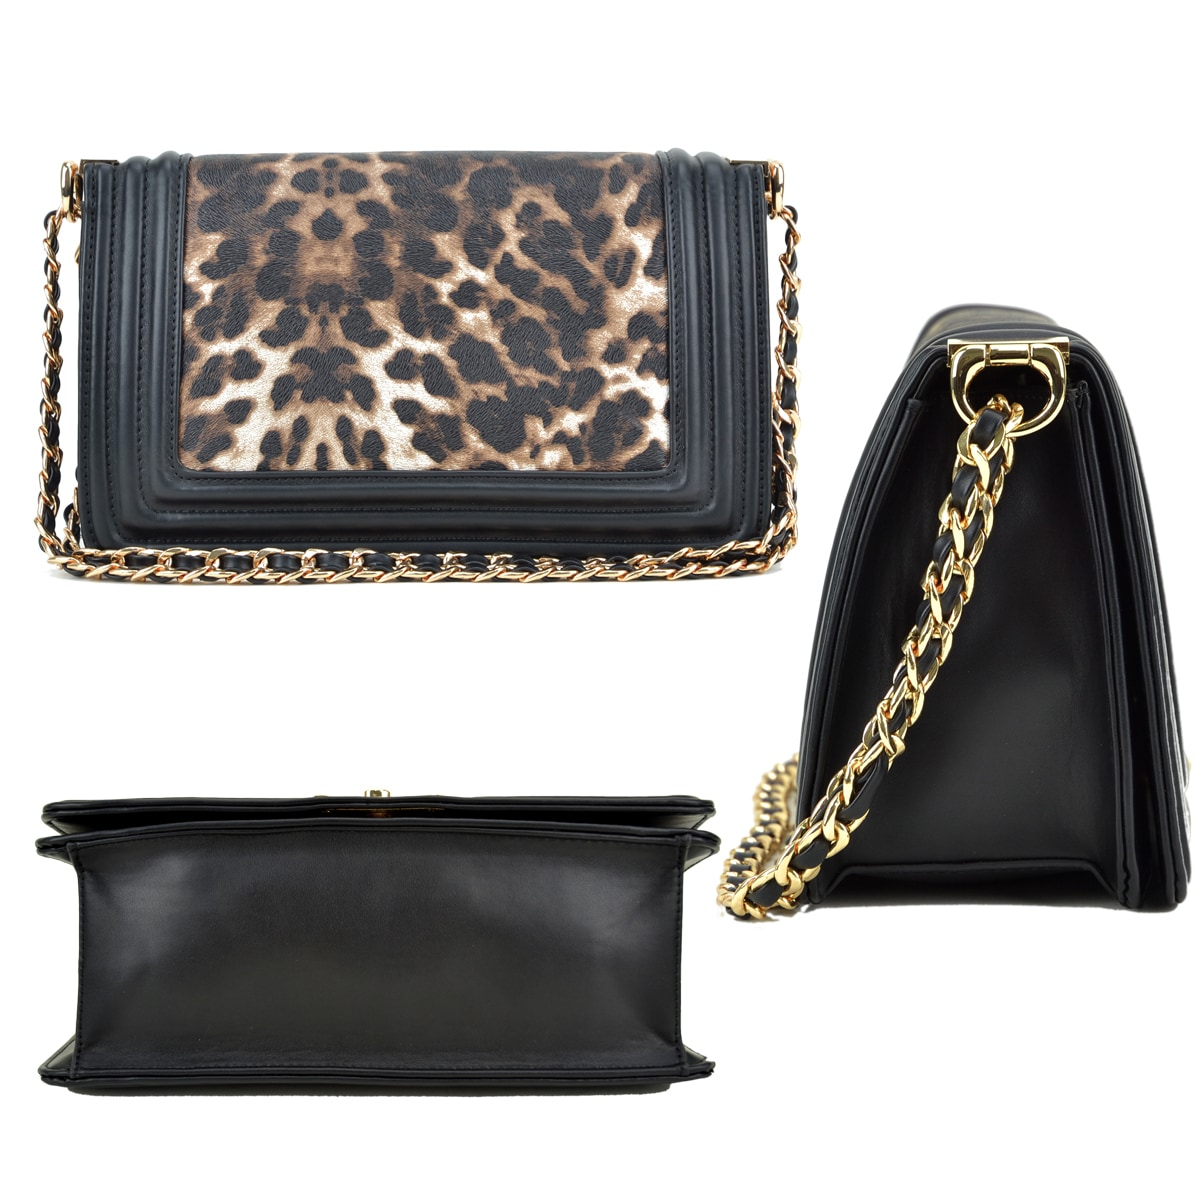 f7aff58f8215 Shop Dasein Quilted Intertwined Leather Gold-Tone Chain Strap Leopard  Crossbody Handbag - On Sale - Free Shipping On Orders Over  45 - Overstock  - 18613684